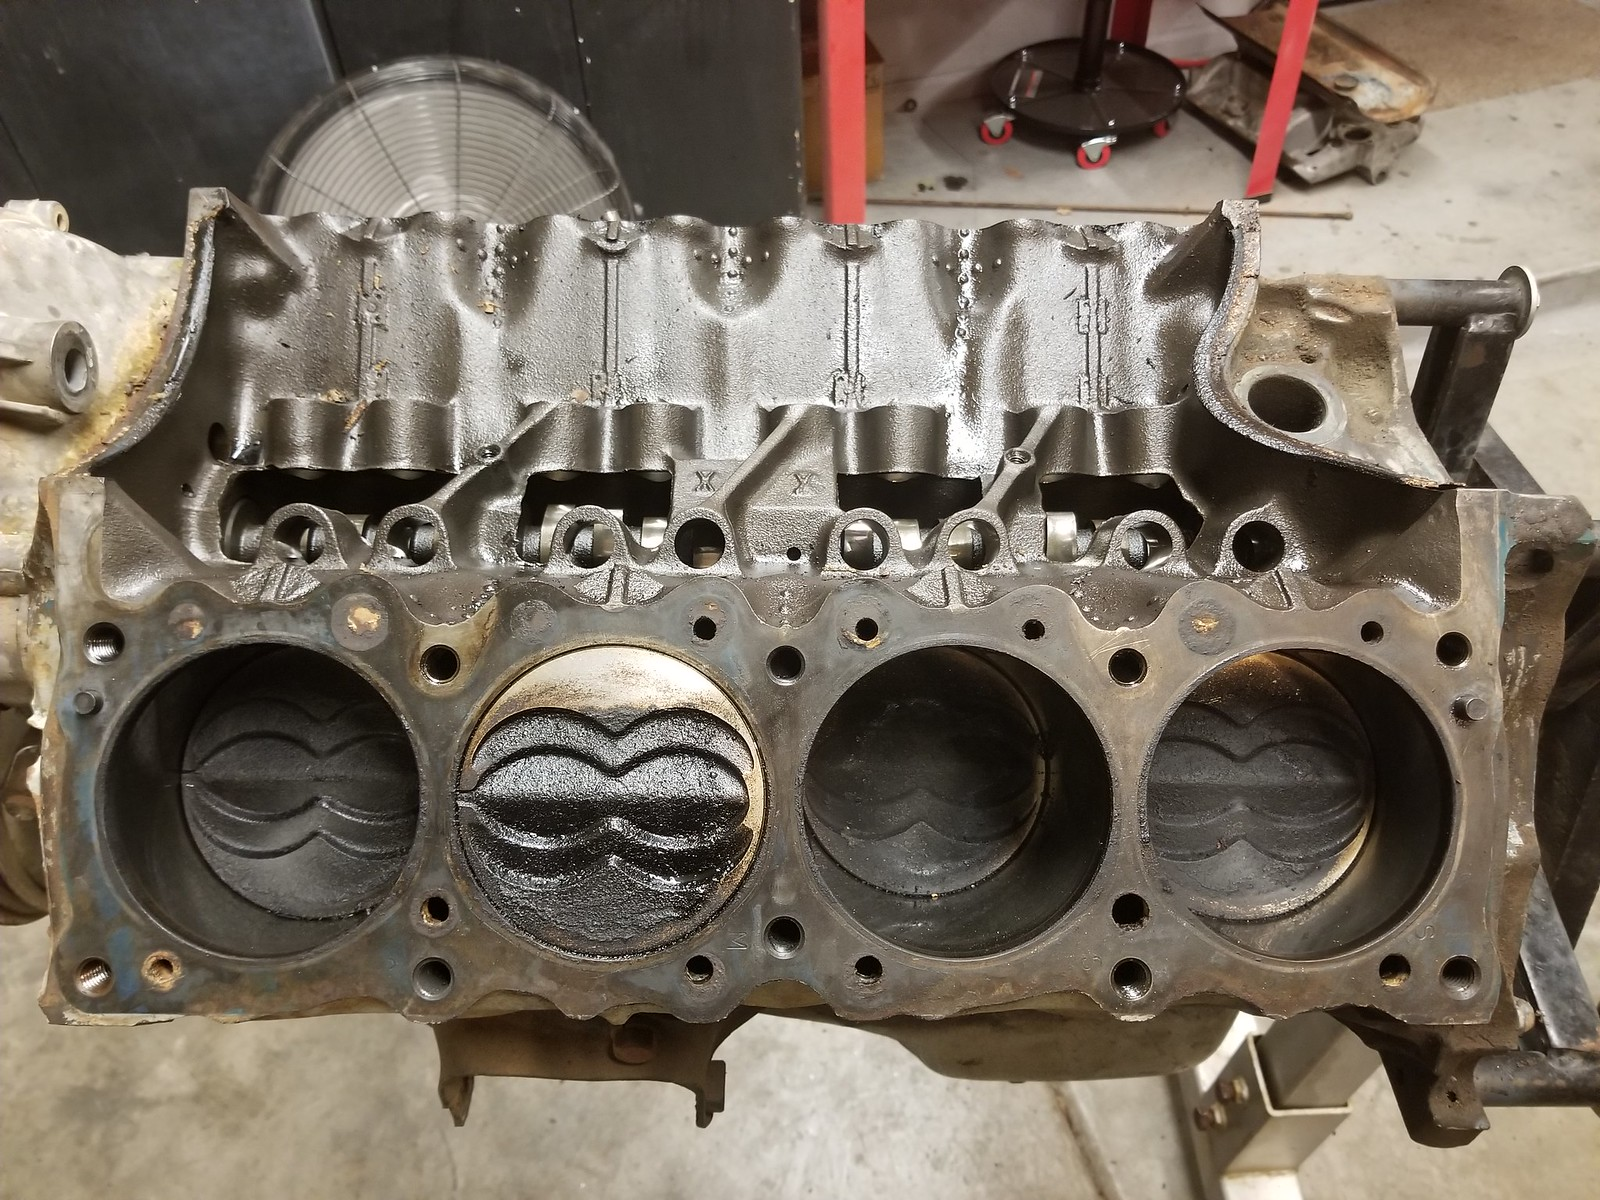 Pistons, what motor is this from?